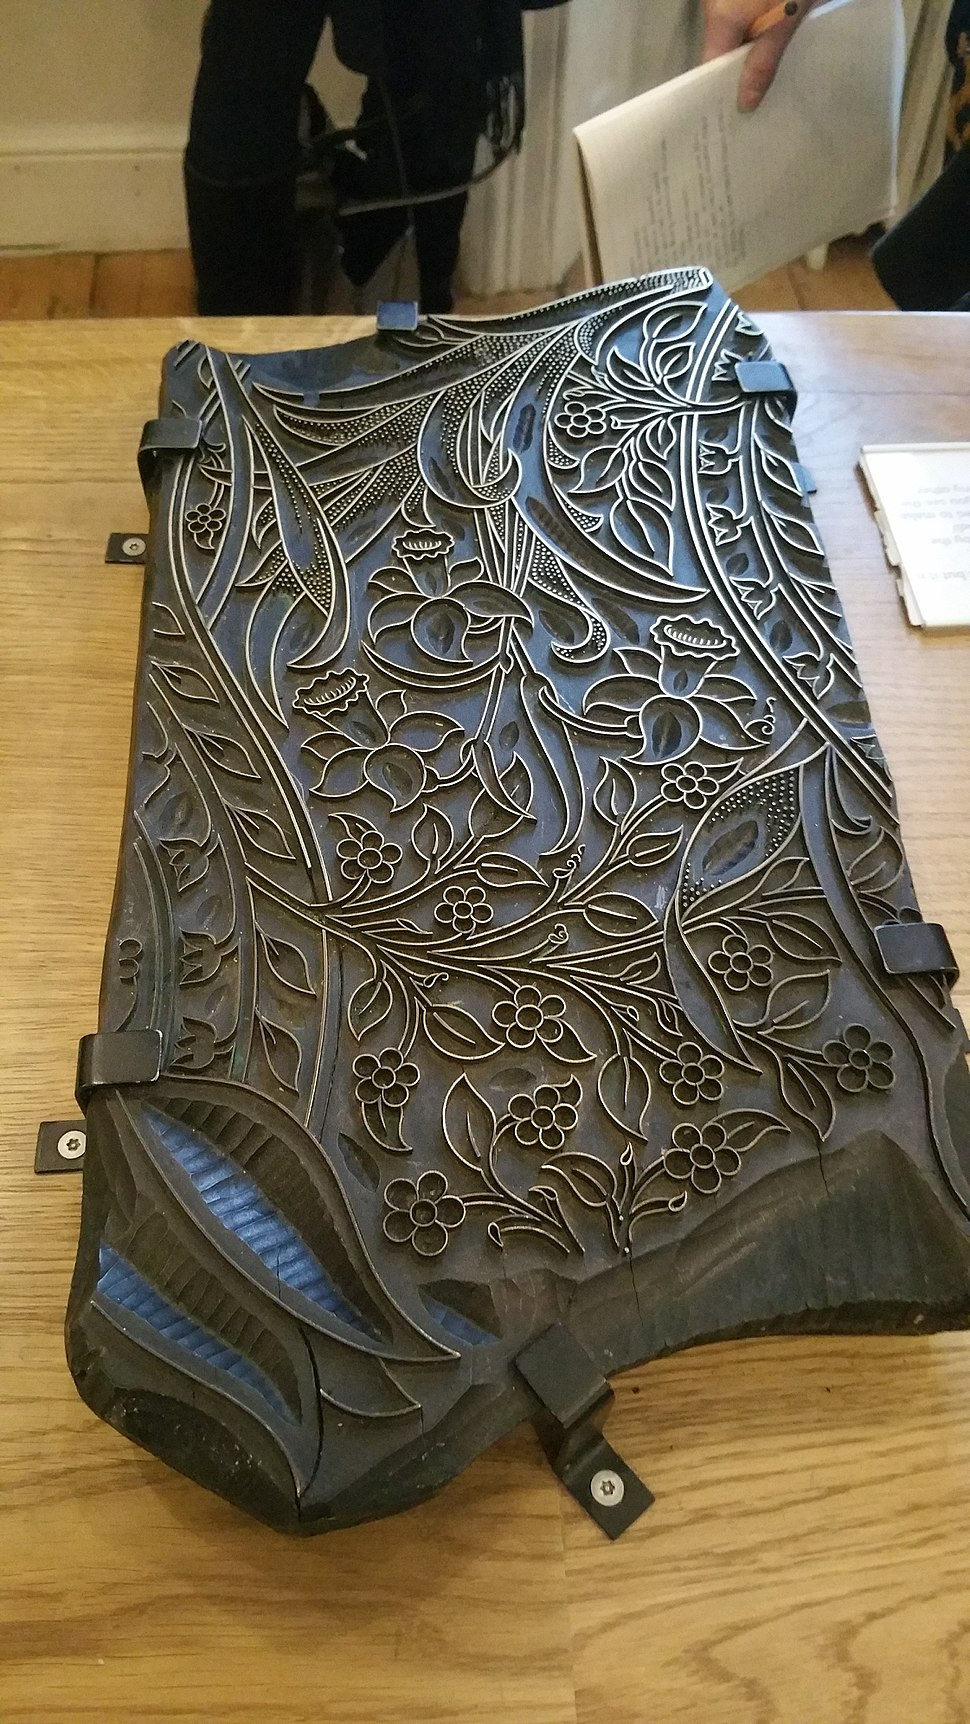 A Wooden Pattern for Textile Printing from William Morris's Company